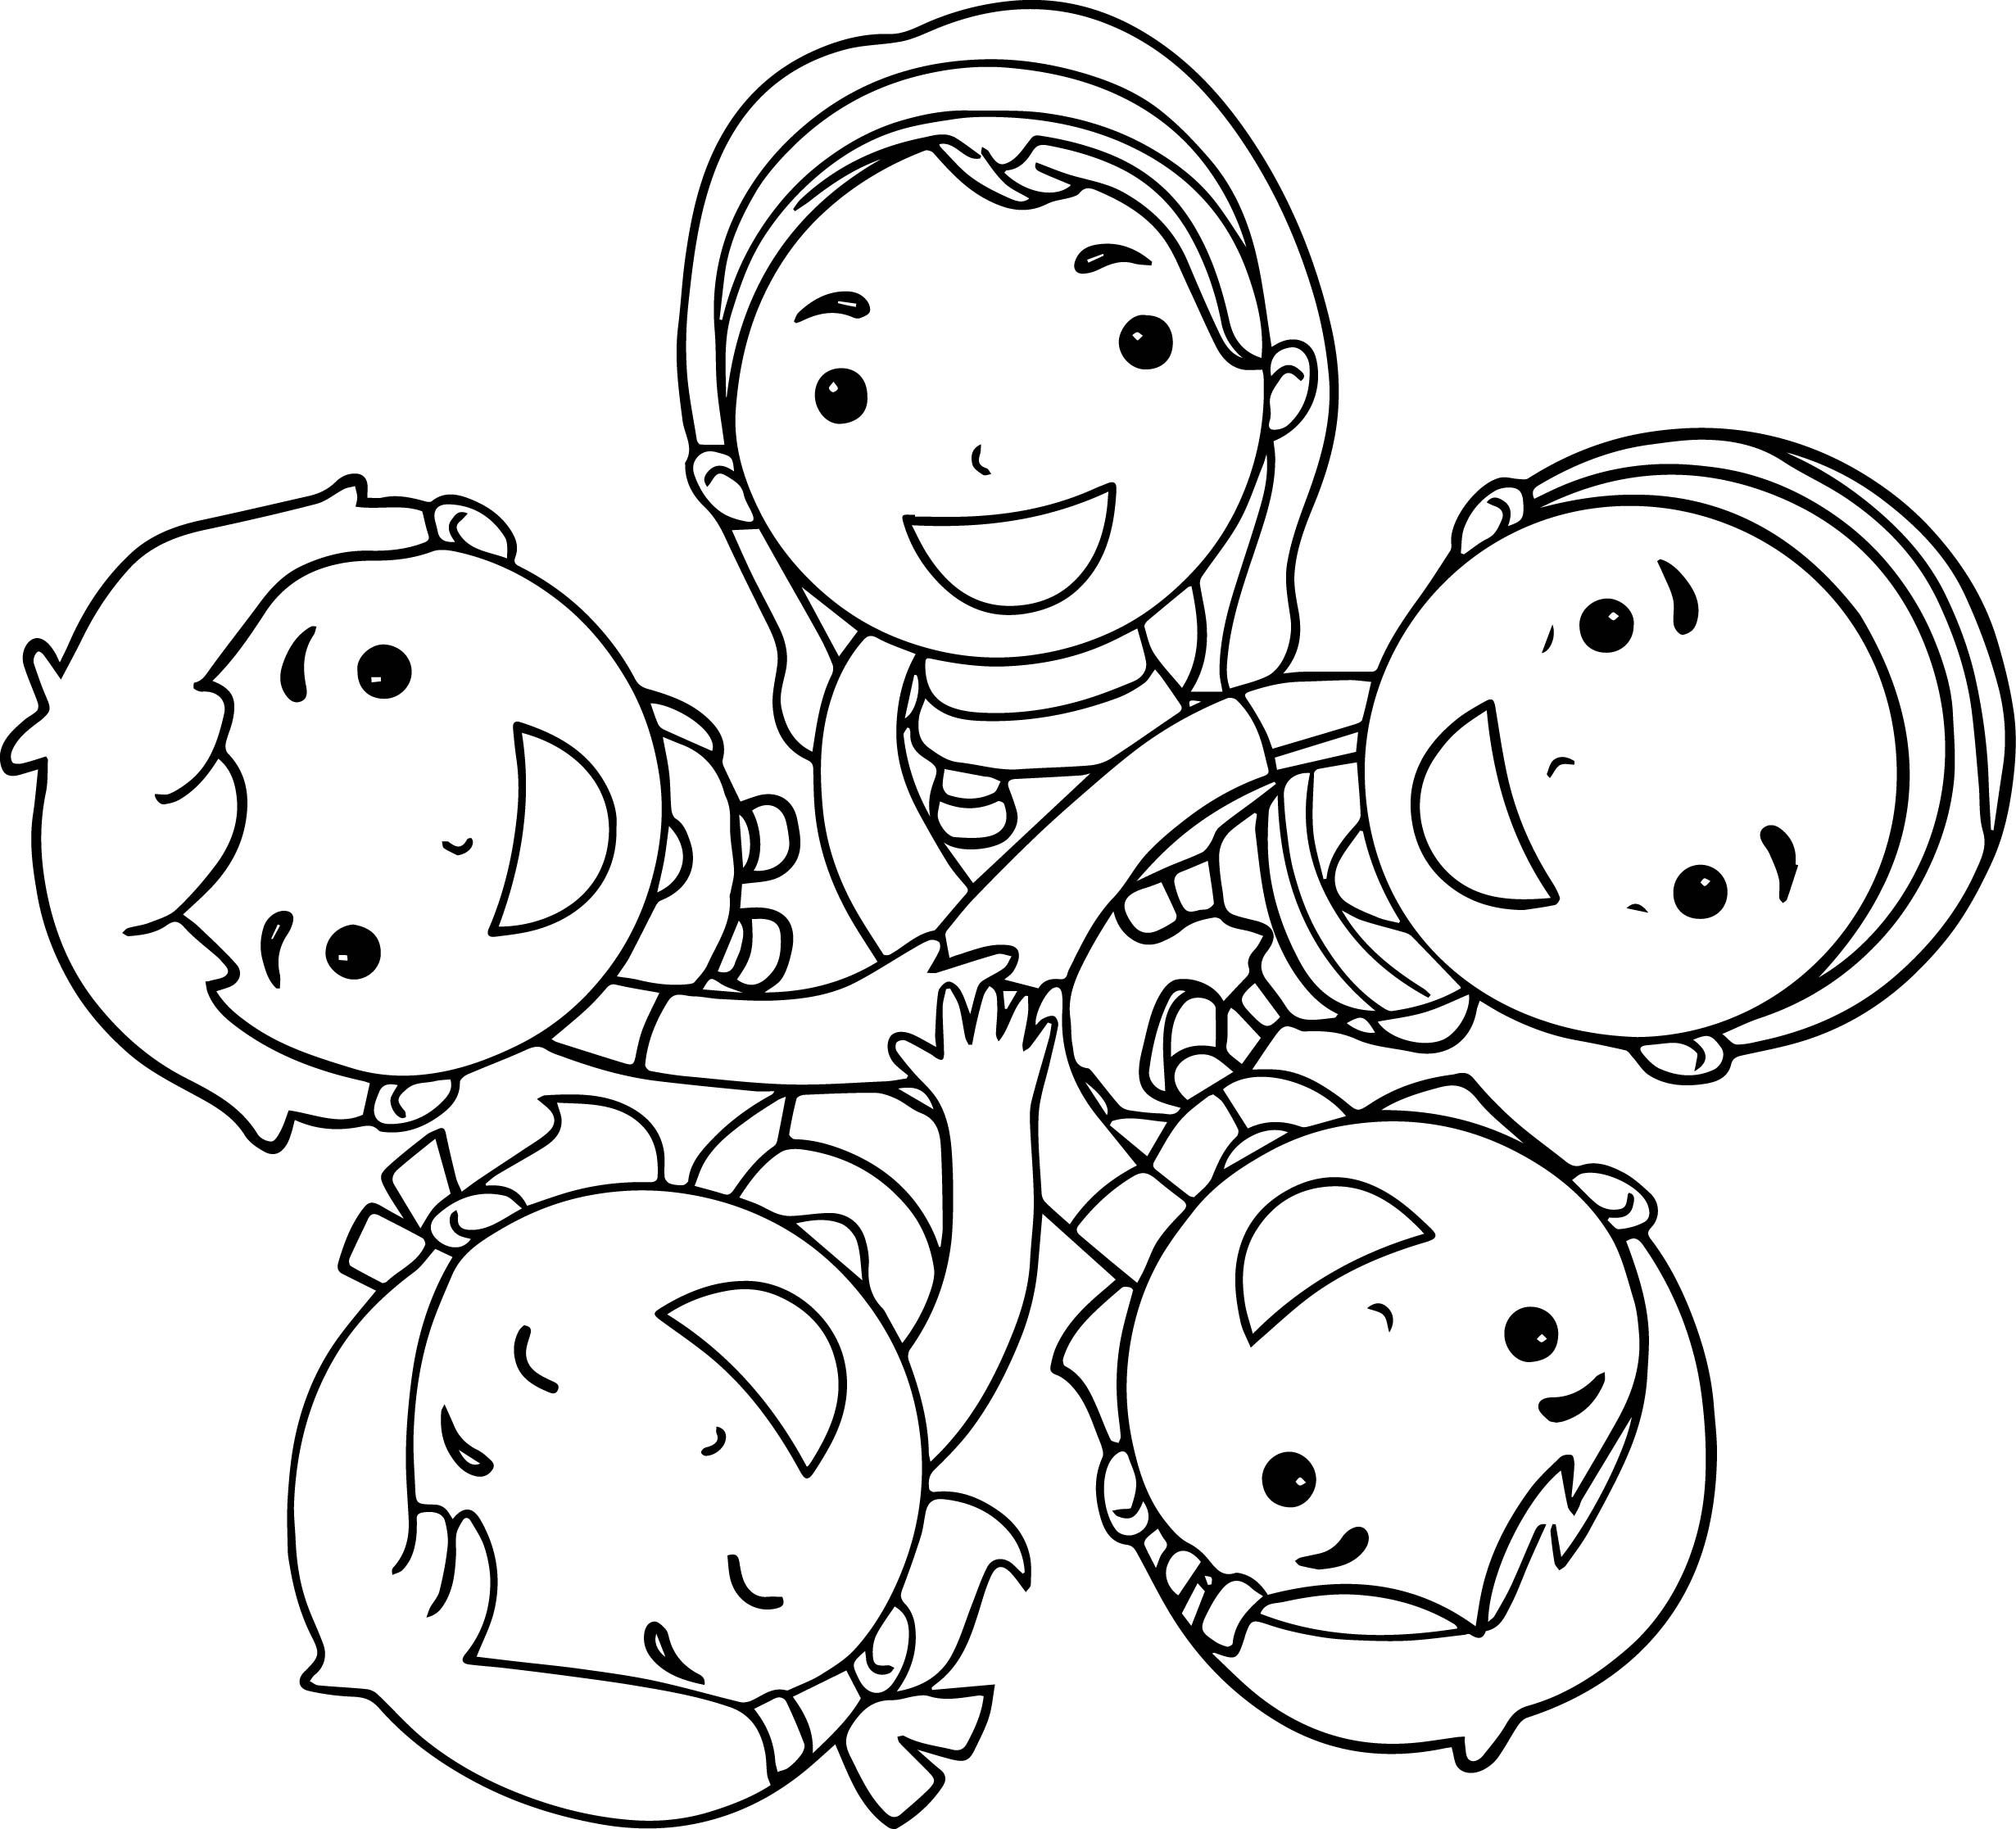 Cool Five Best Friends Coloring Page